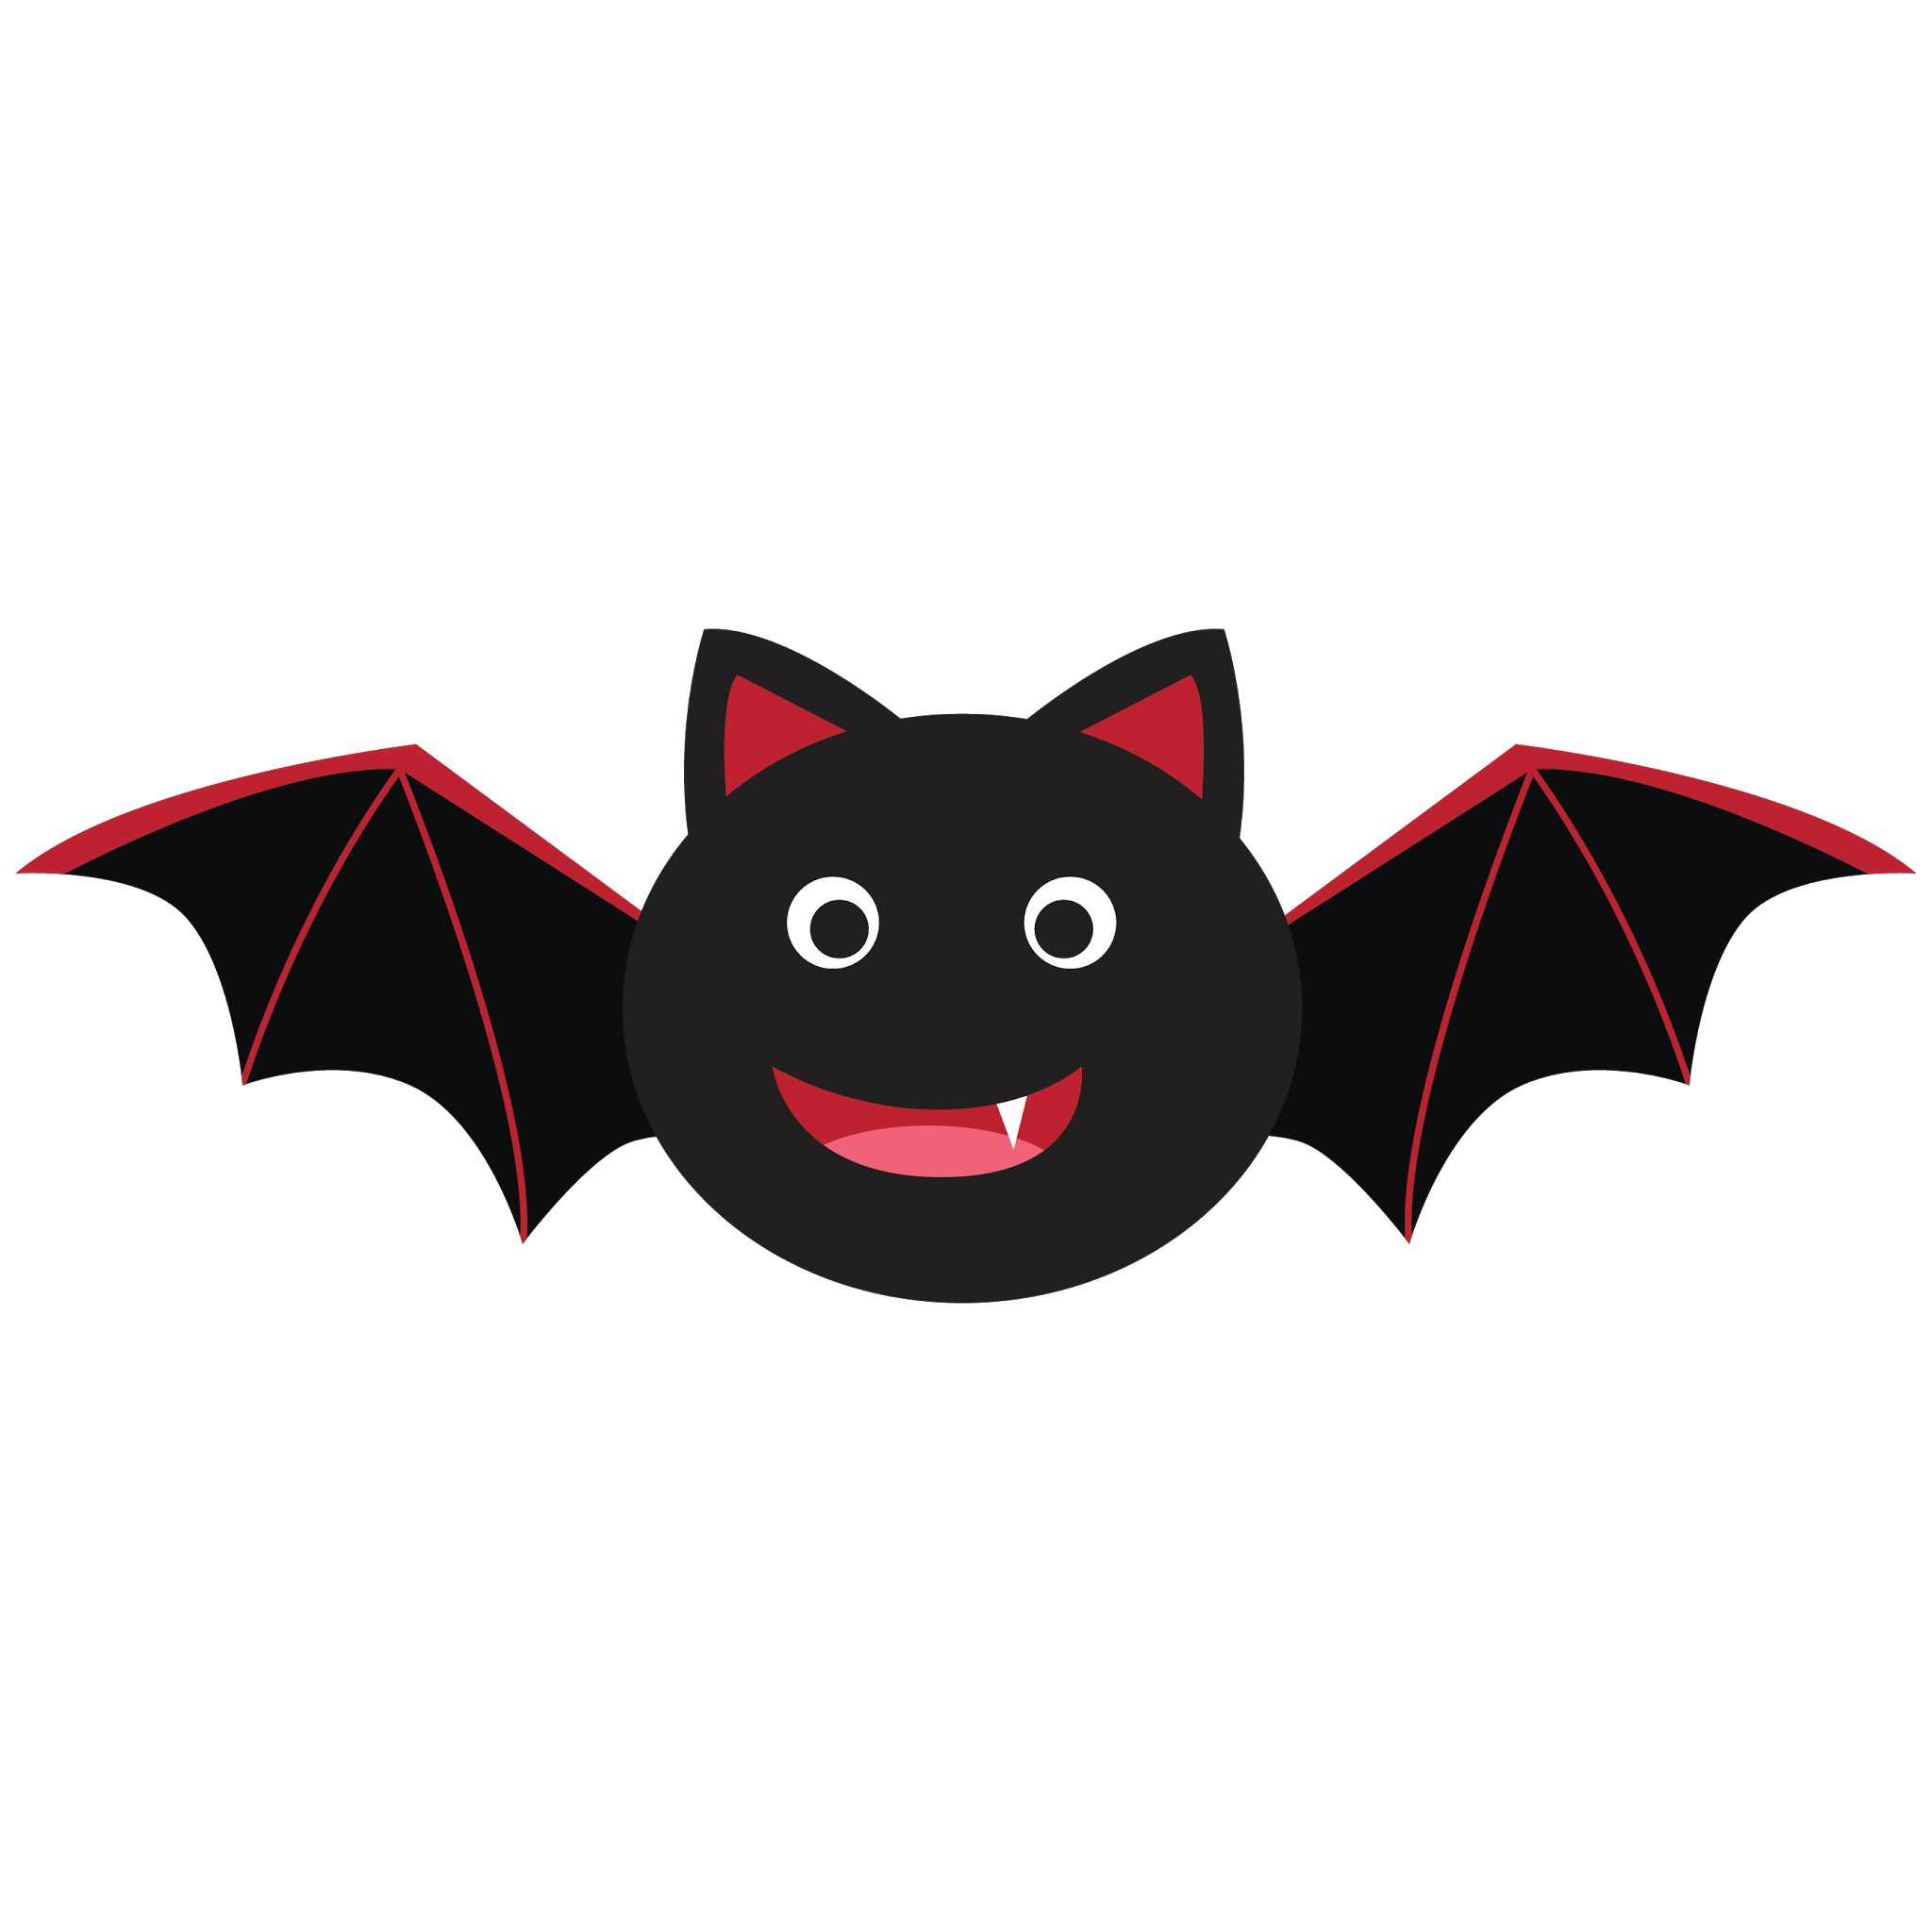 Bat clipart #4, Download drawings